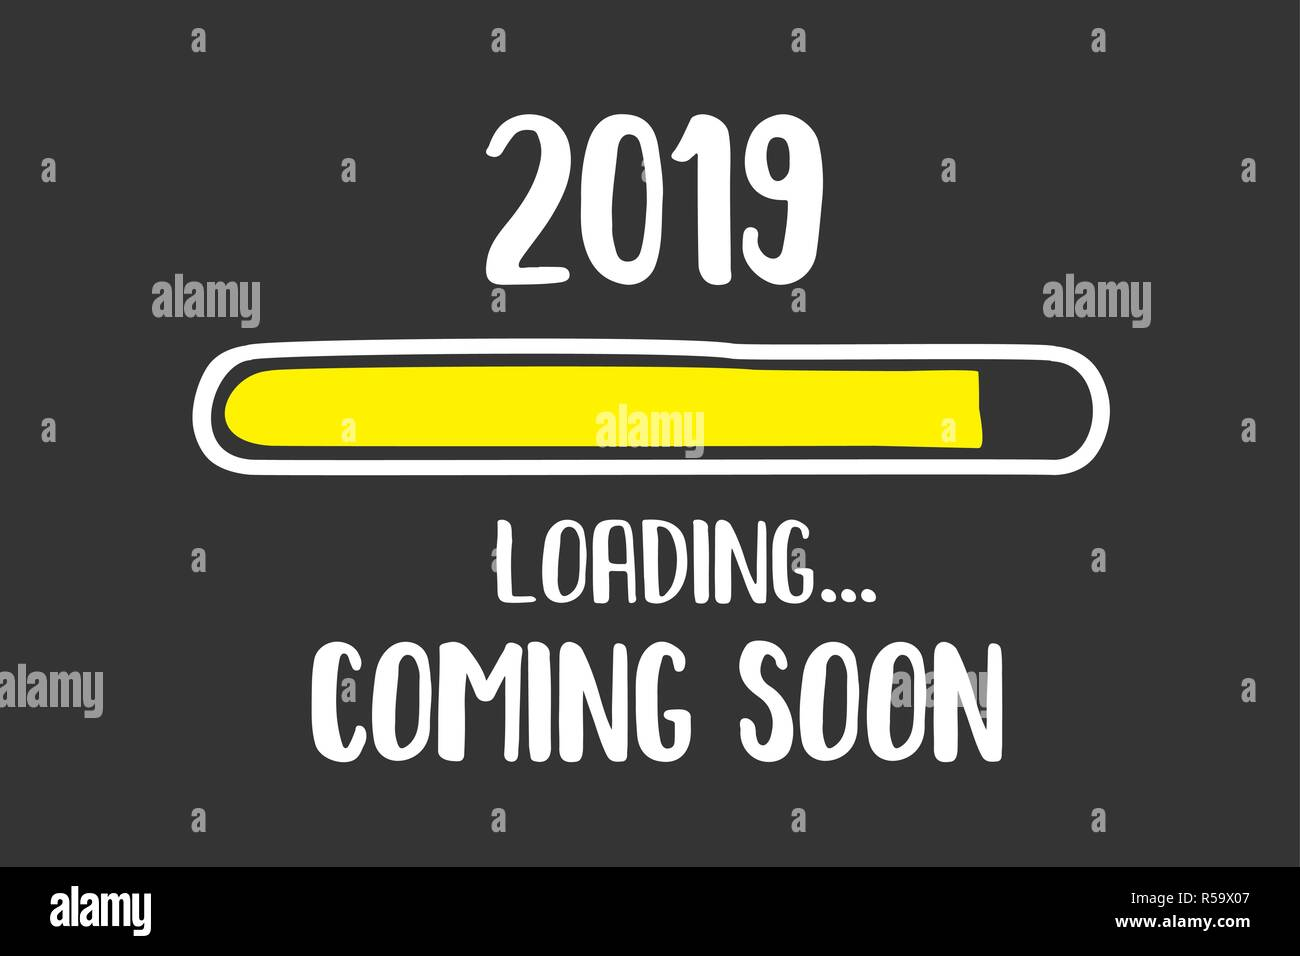 Doodle Download bar,2019 coming soon loading text,black